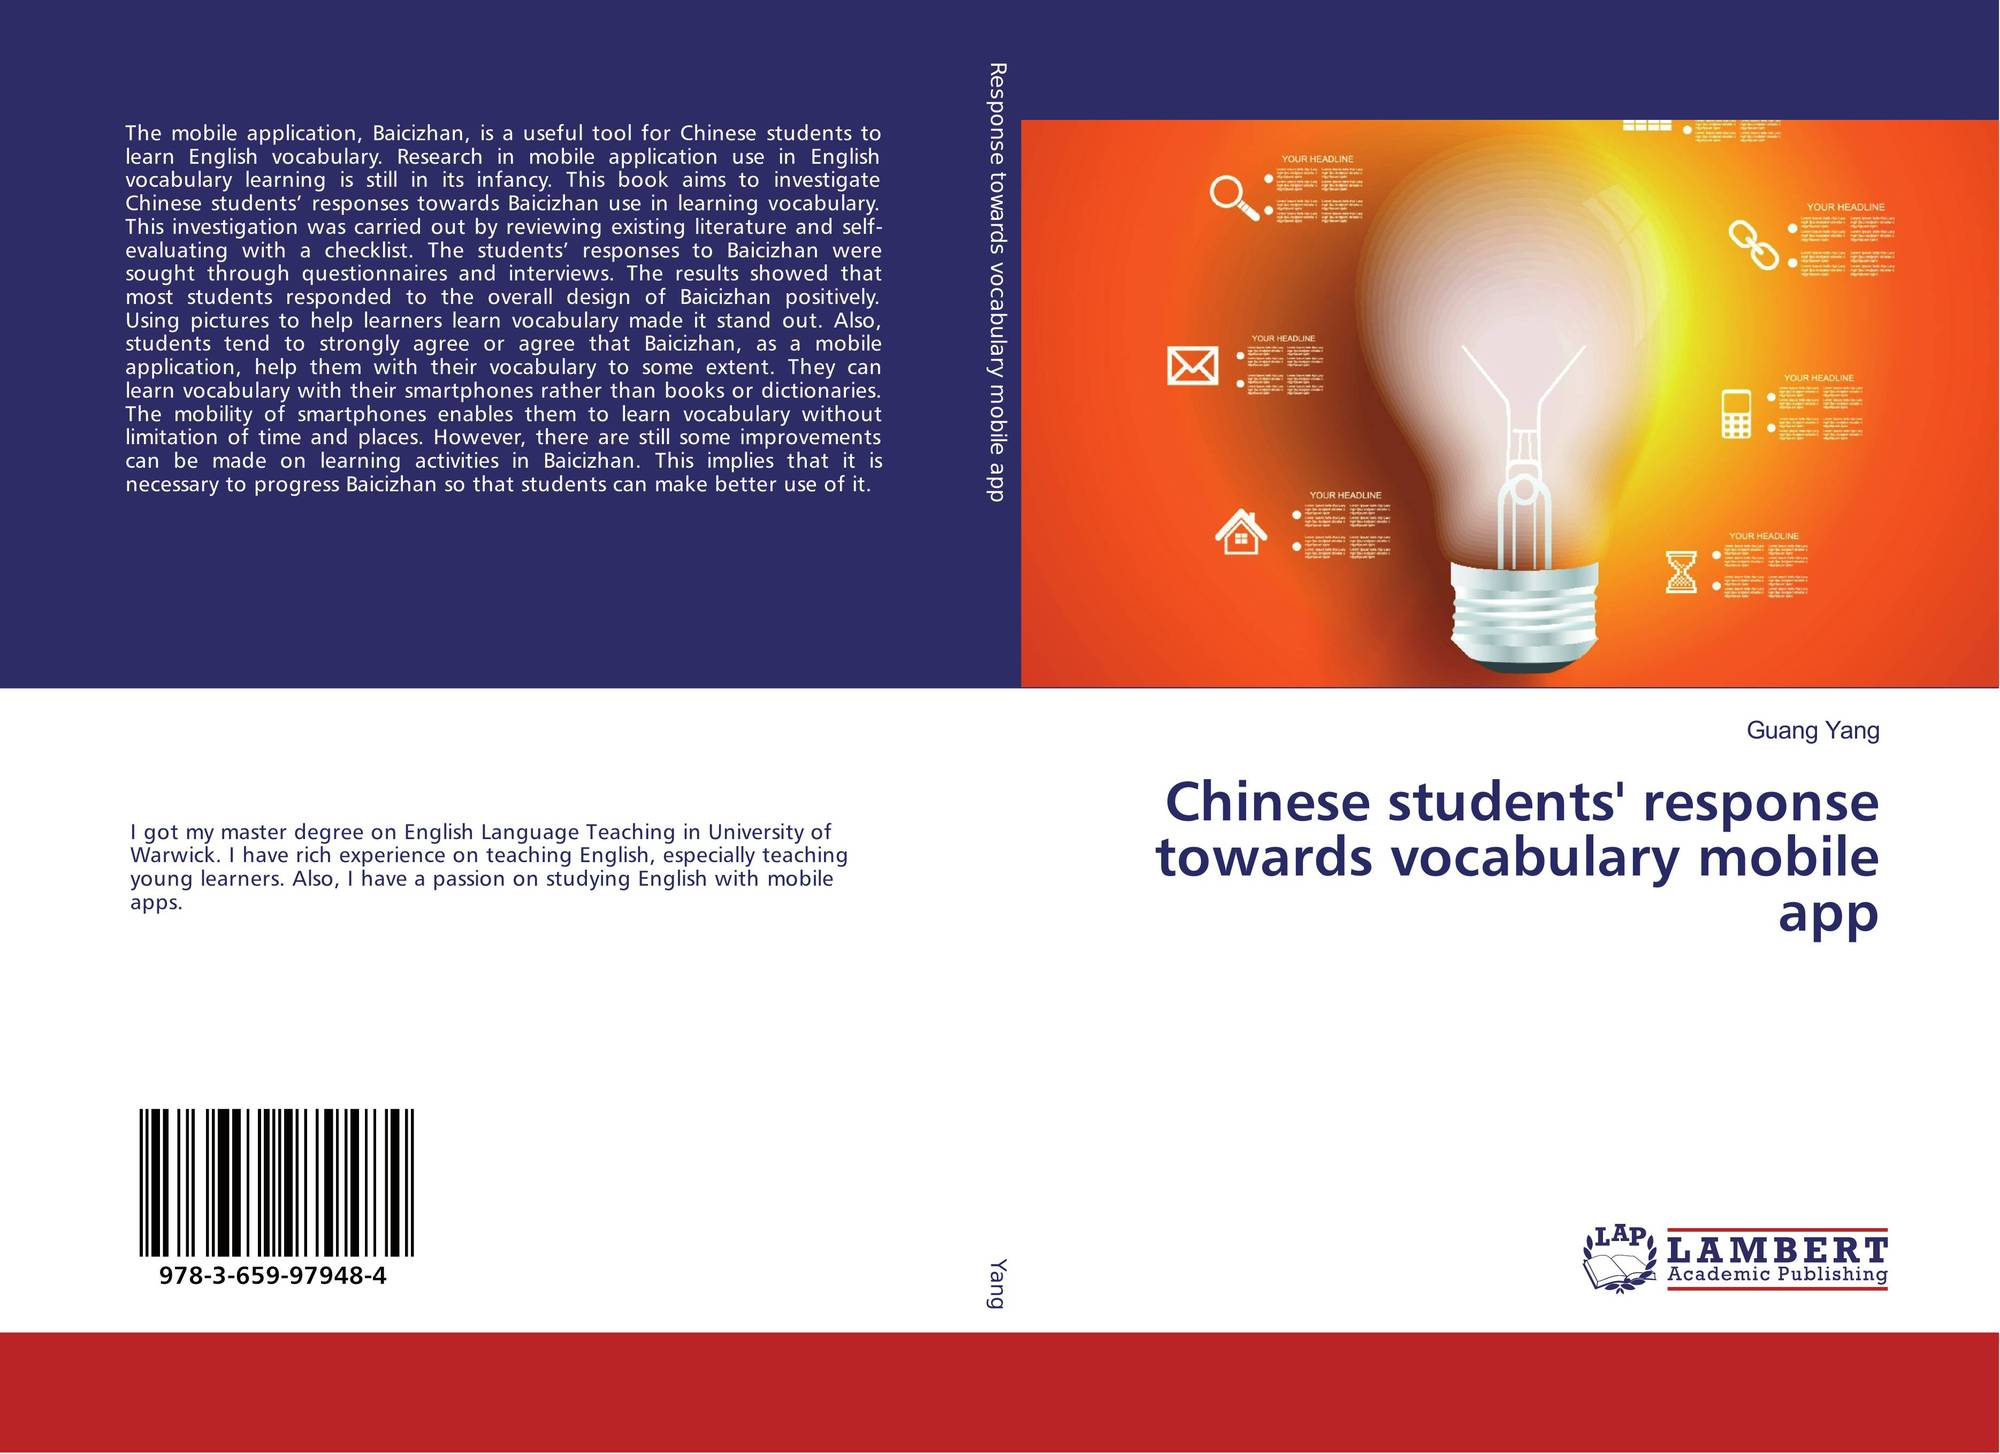 Chinese students' response towards vocabulary mobile app, 978-3-659